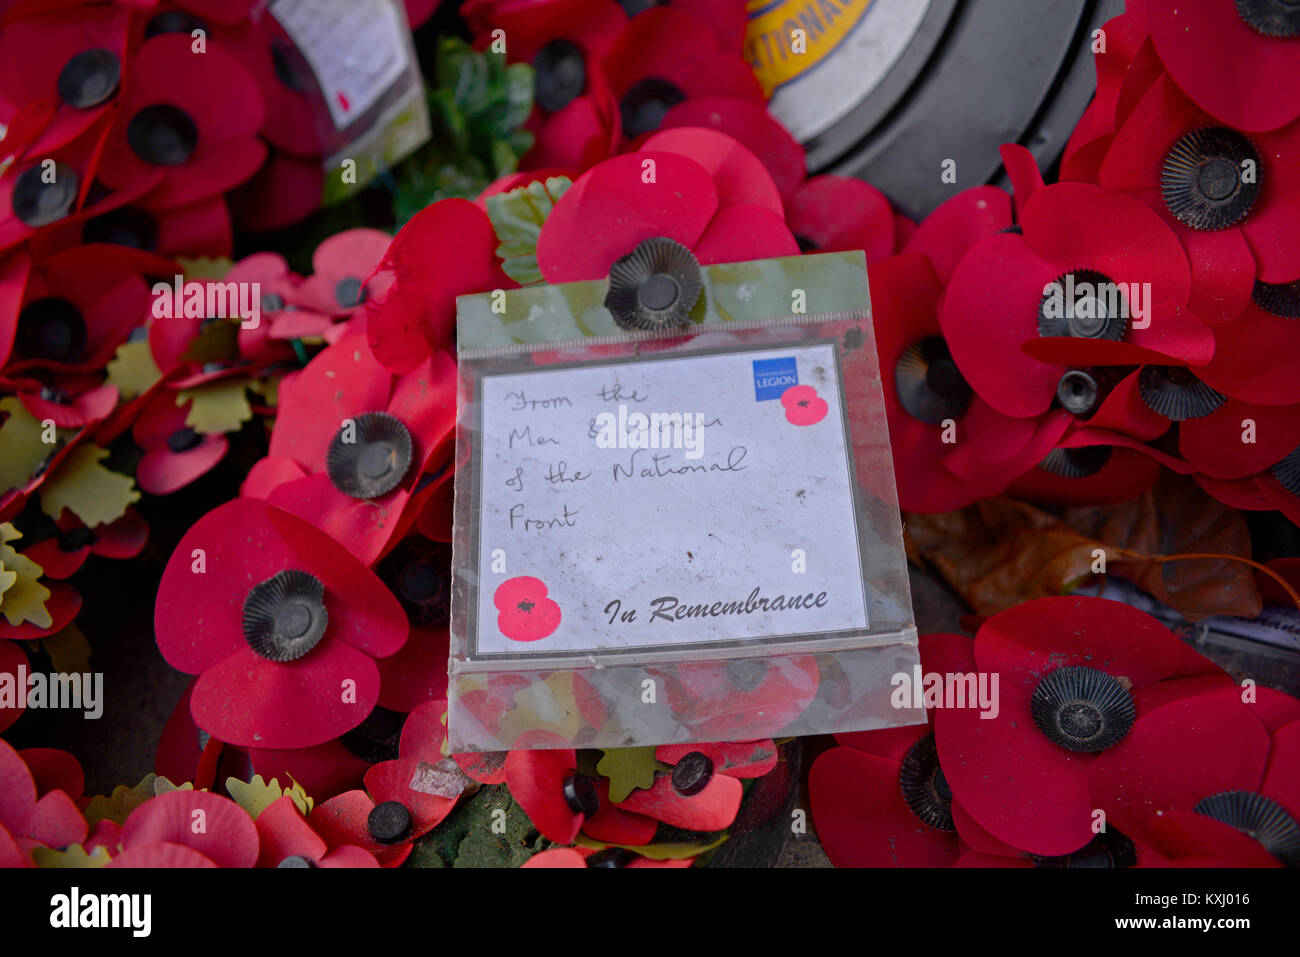 Commemorative remembrance poppy wreath with hand written note from the men and women of the National Front on Royal - Stock Image